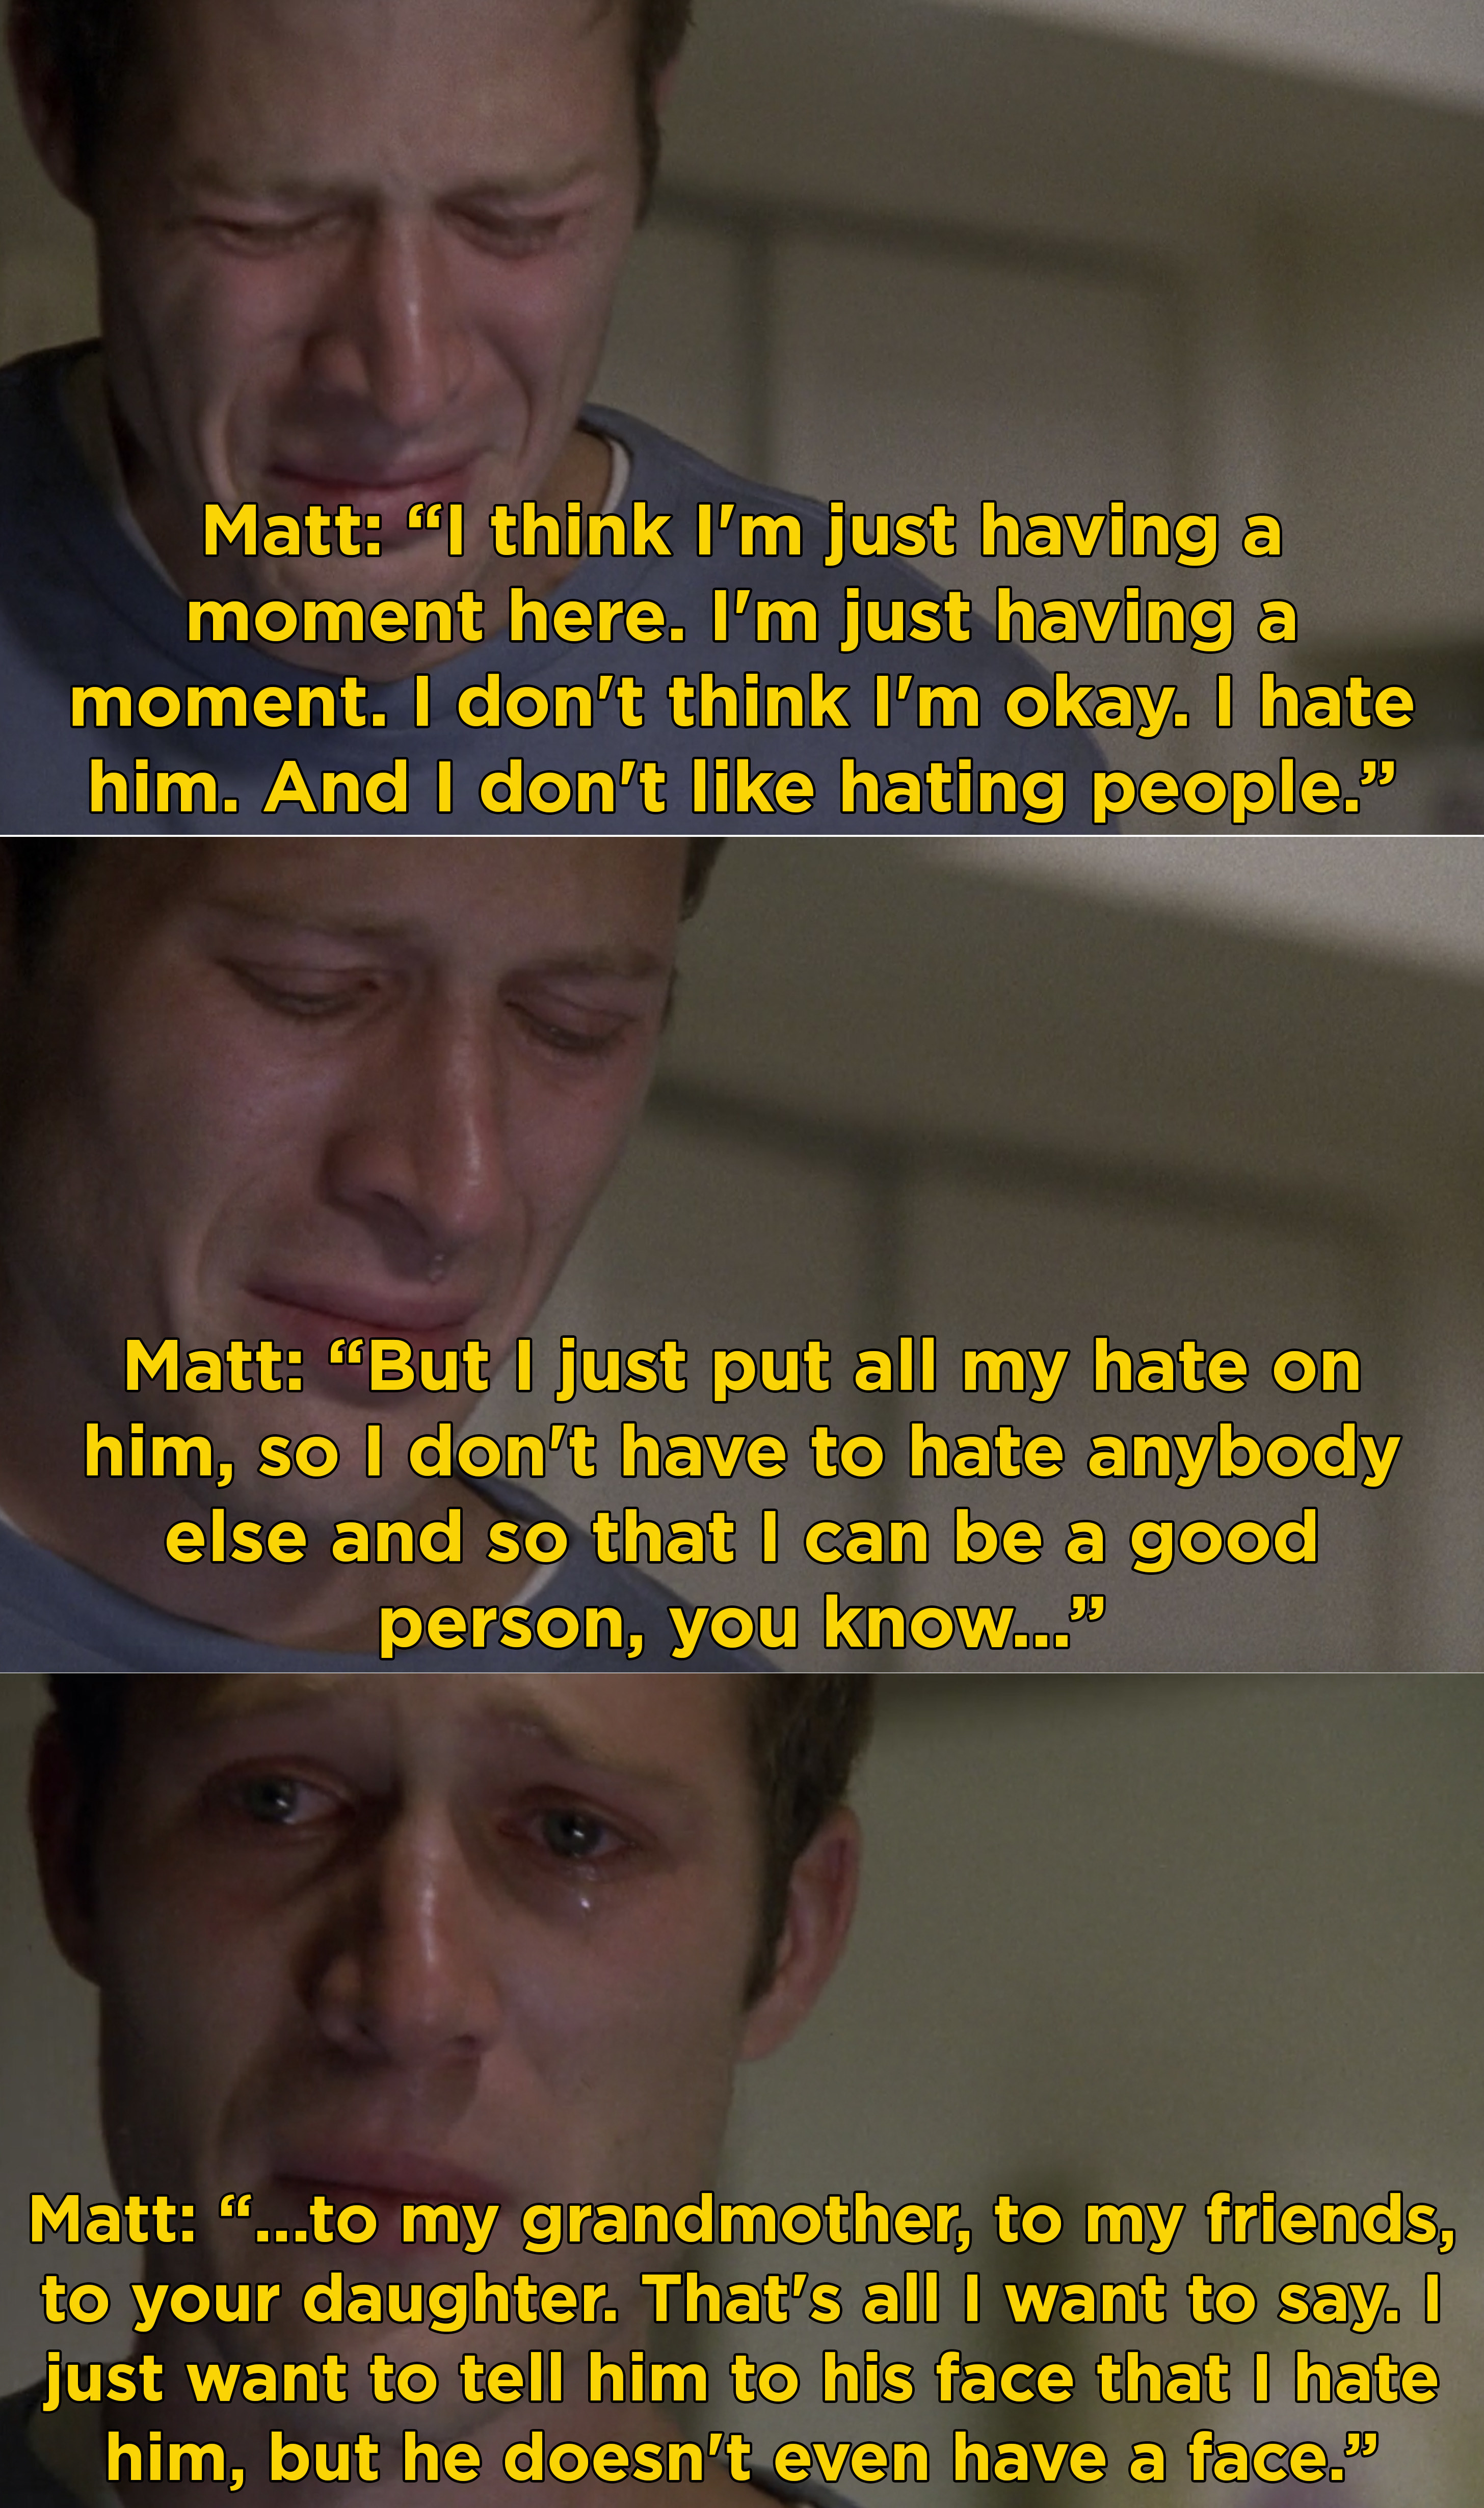 Matt crying over his dad and saying he hated him but he doesn't like hating people